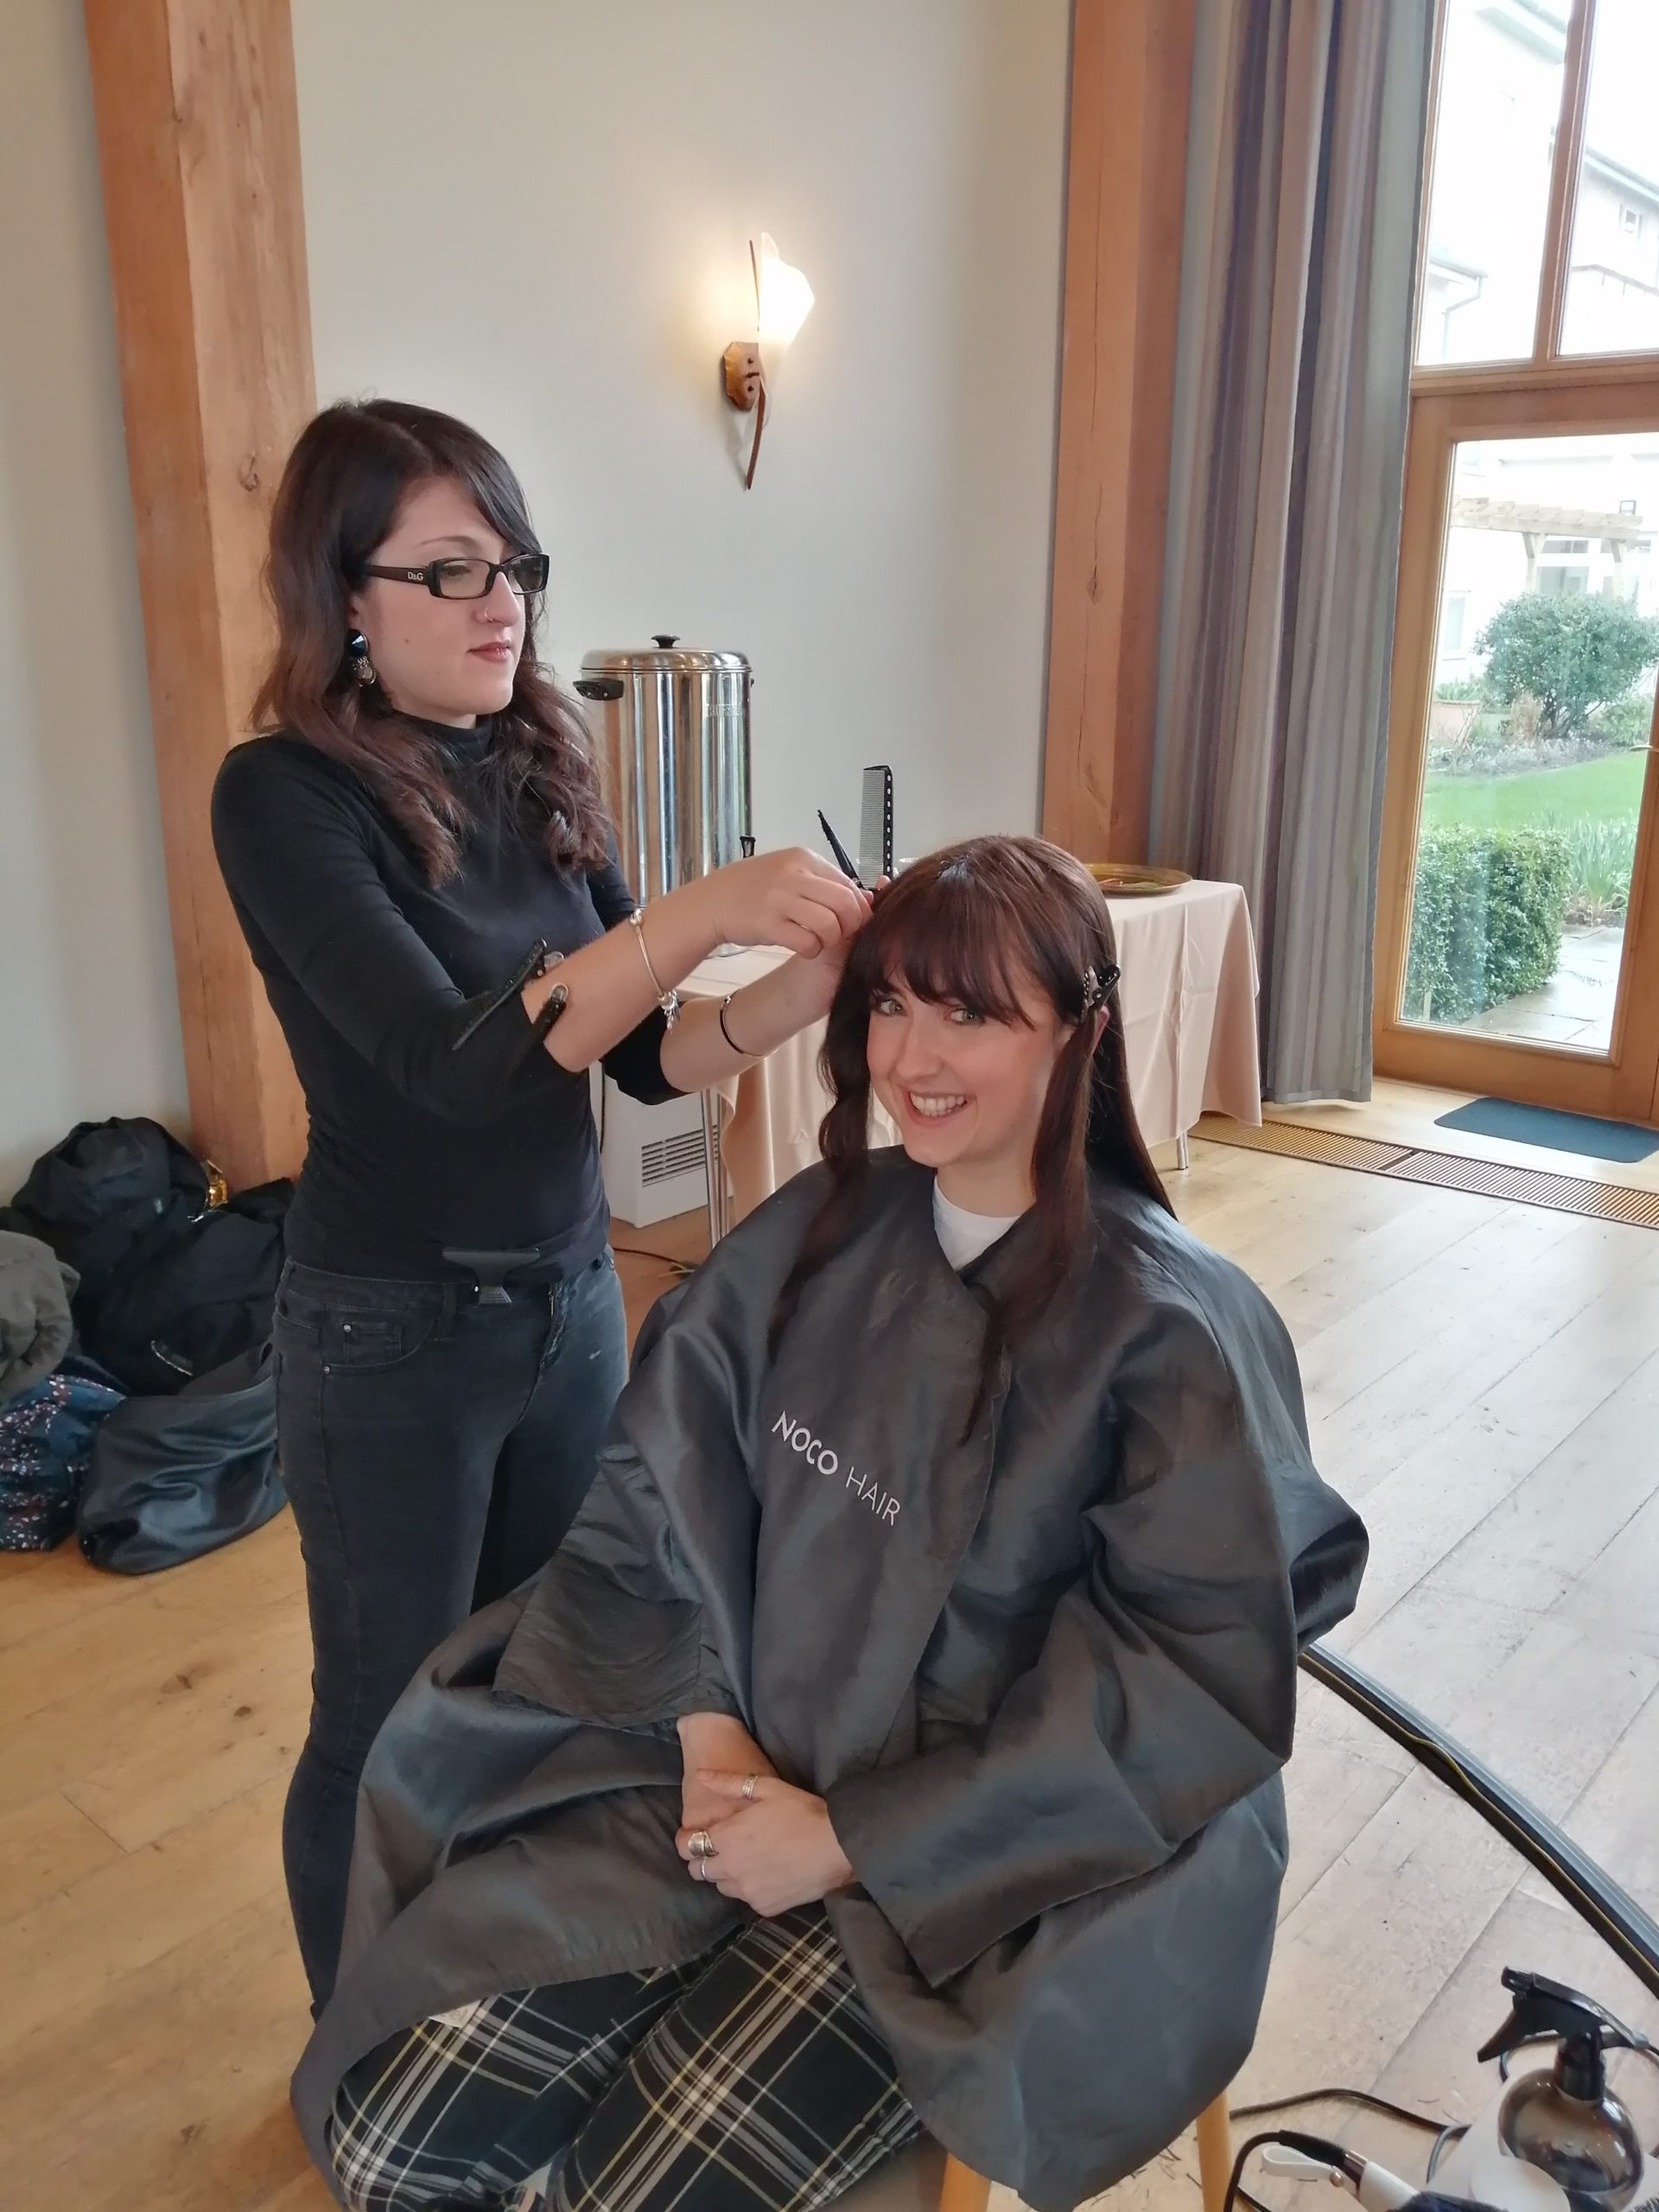 Photo of Sophie from fundrasing having her hair cut by Noco stylists